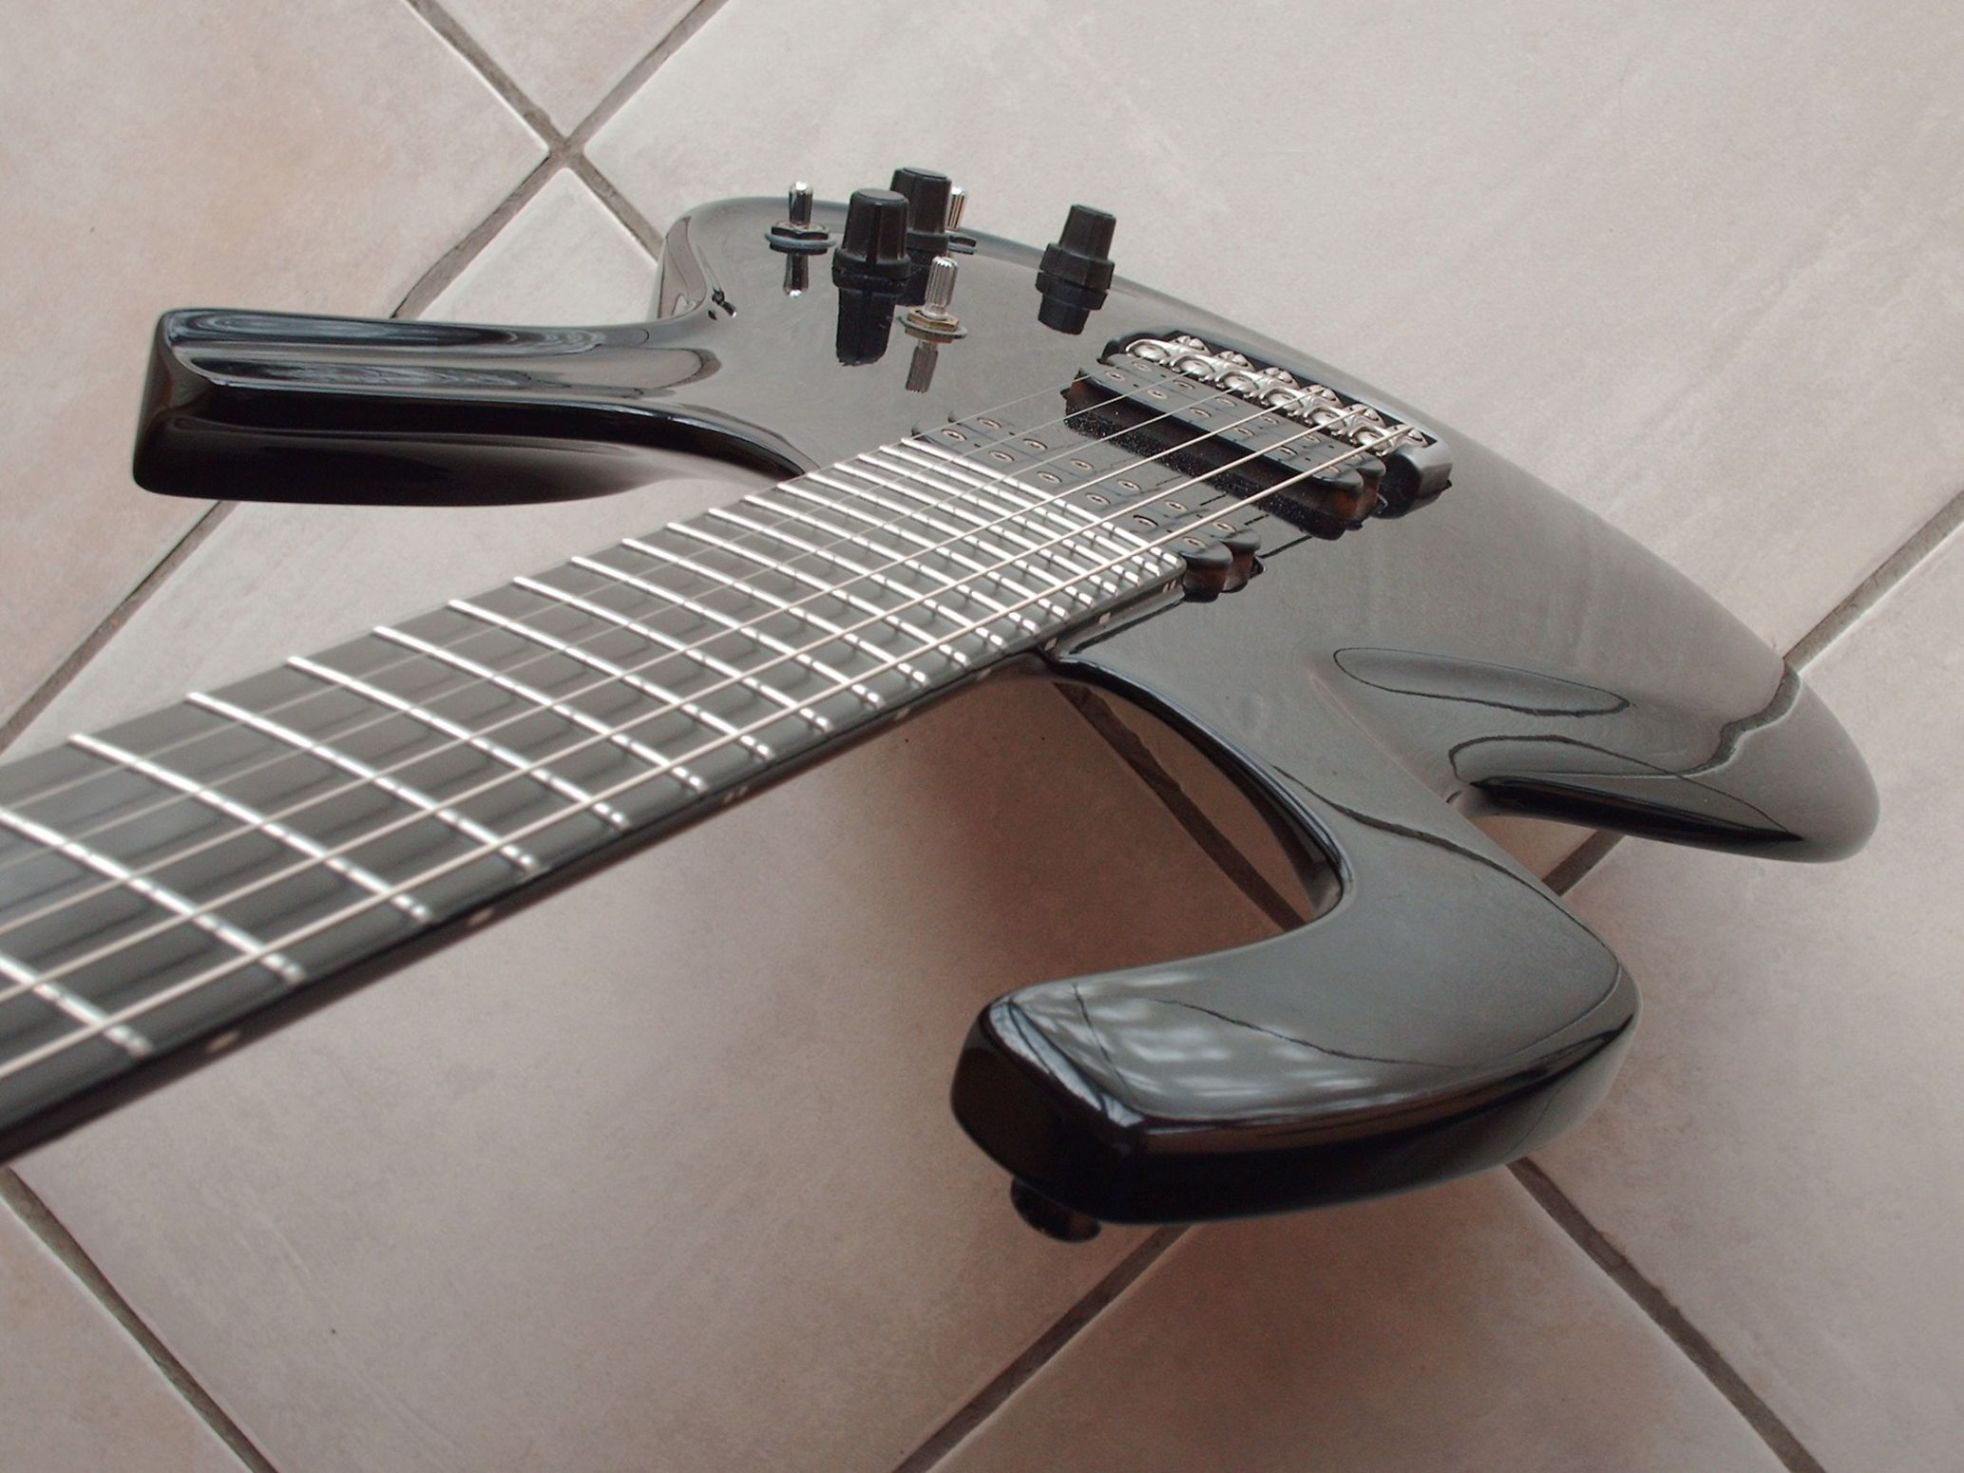 Parker Fly Mojo Wiring Diagram Trusted Diagrams Guitars Guitar Review Collection Ideas Nighthawk